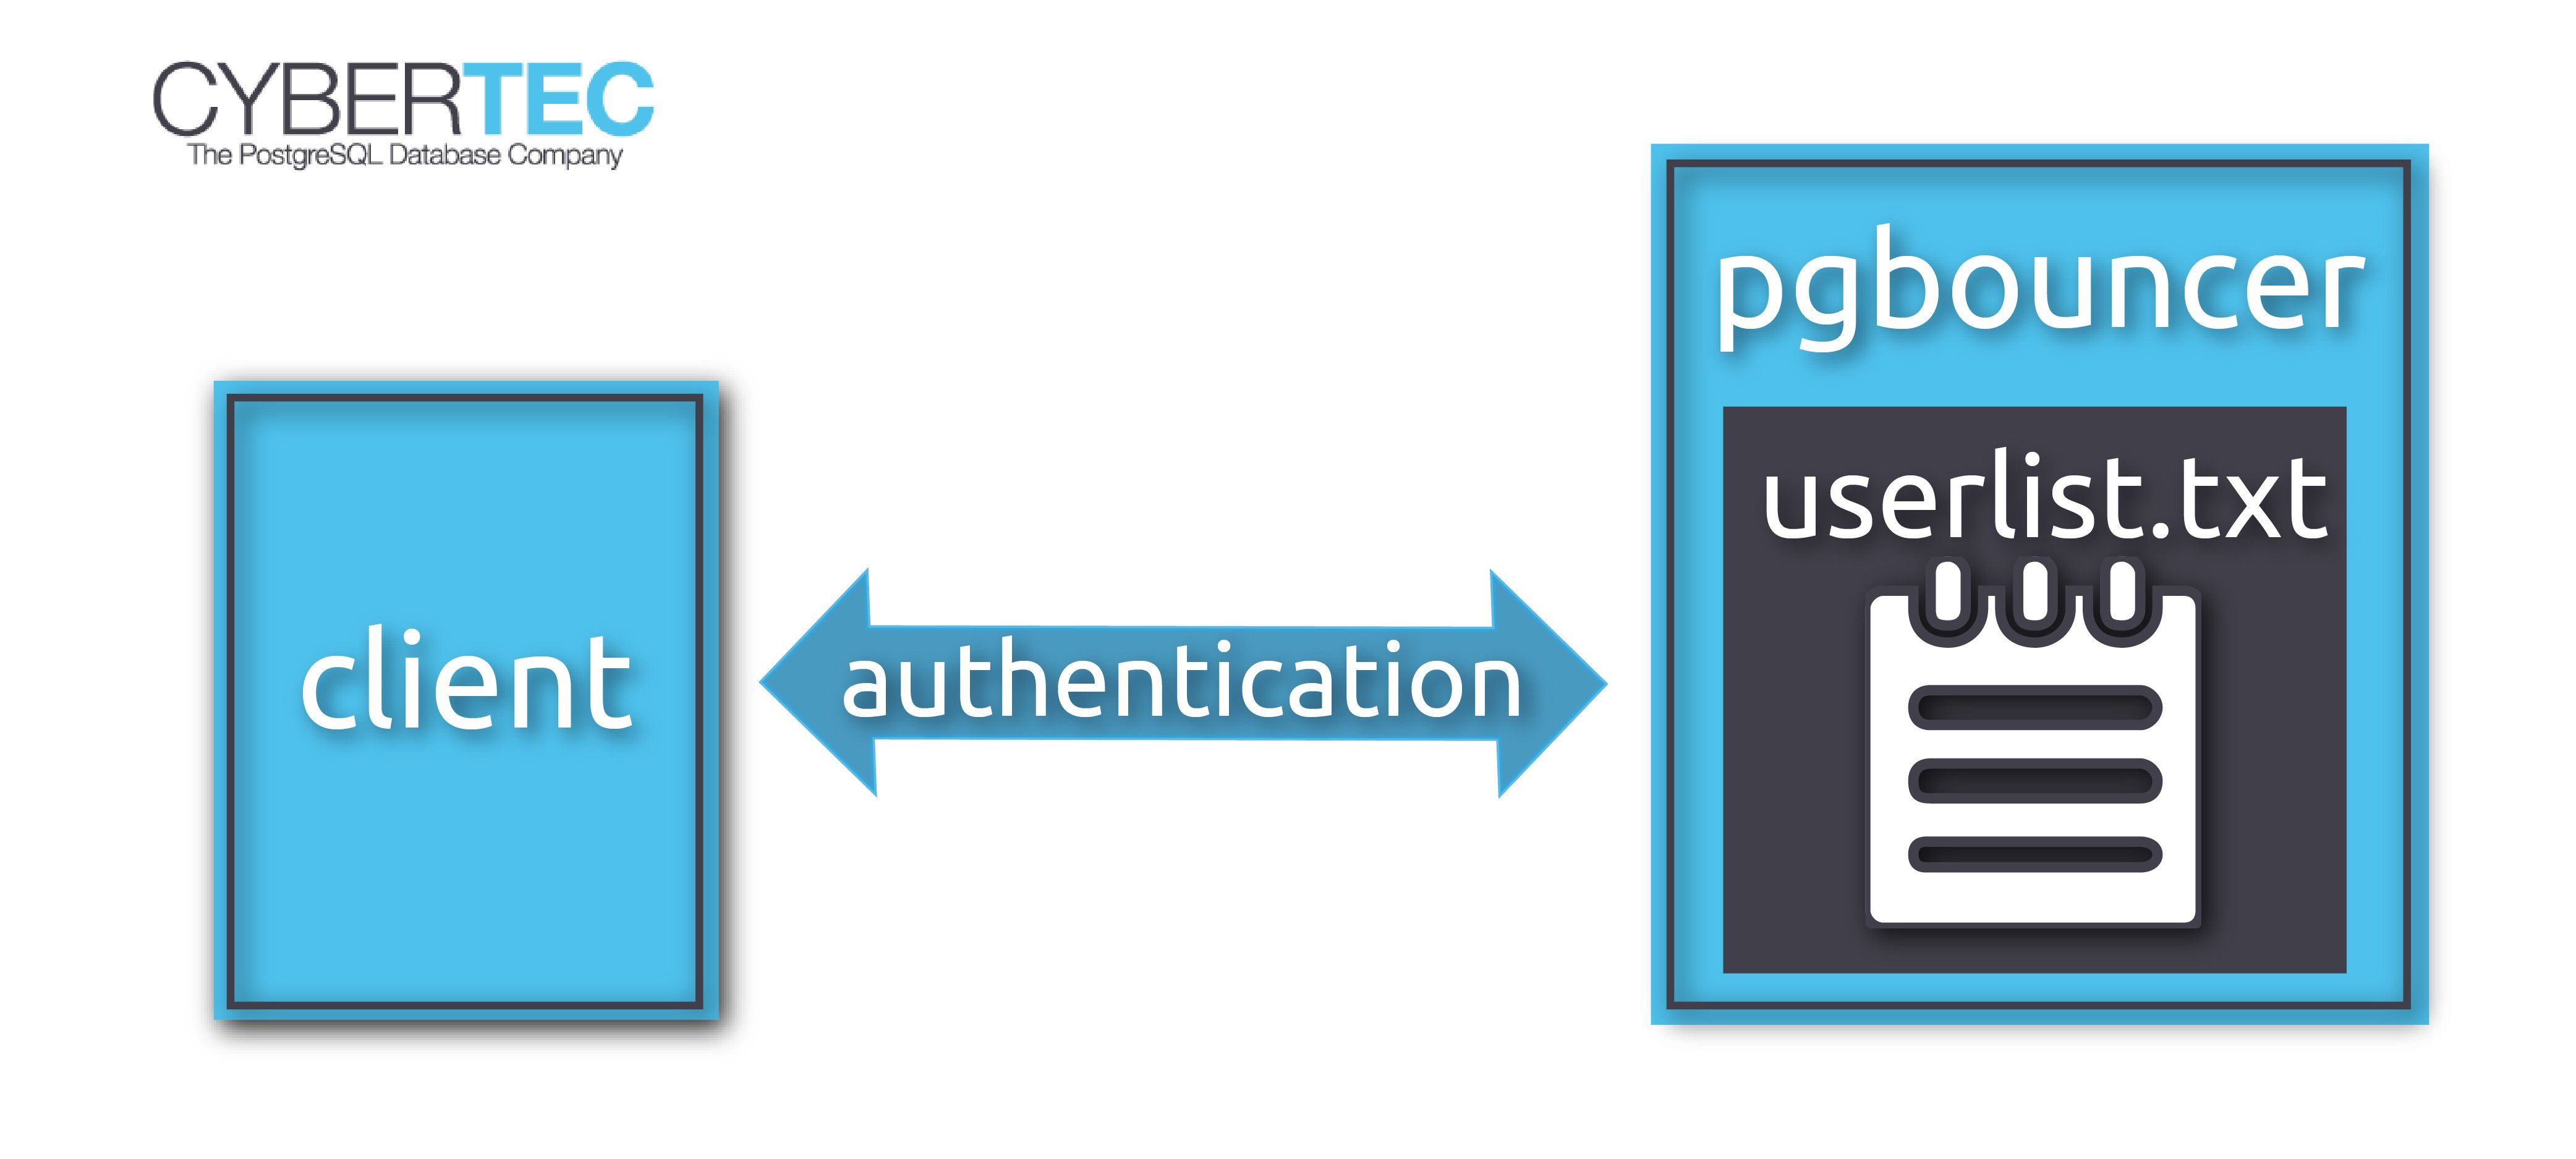 pgbouncer authentication - configuration in simple steps - Cybertec